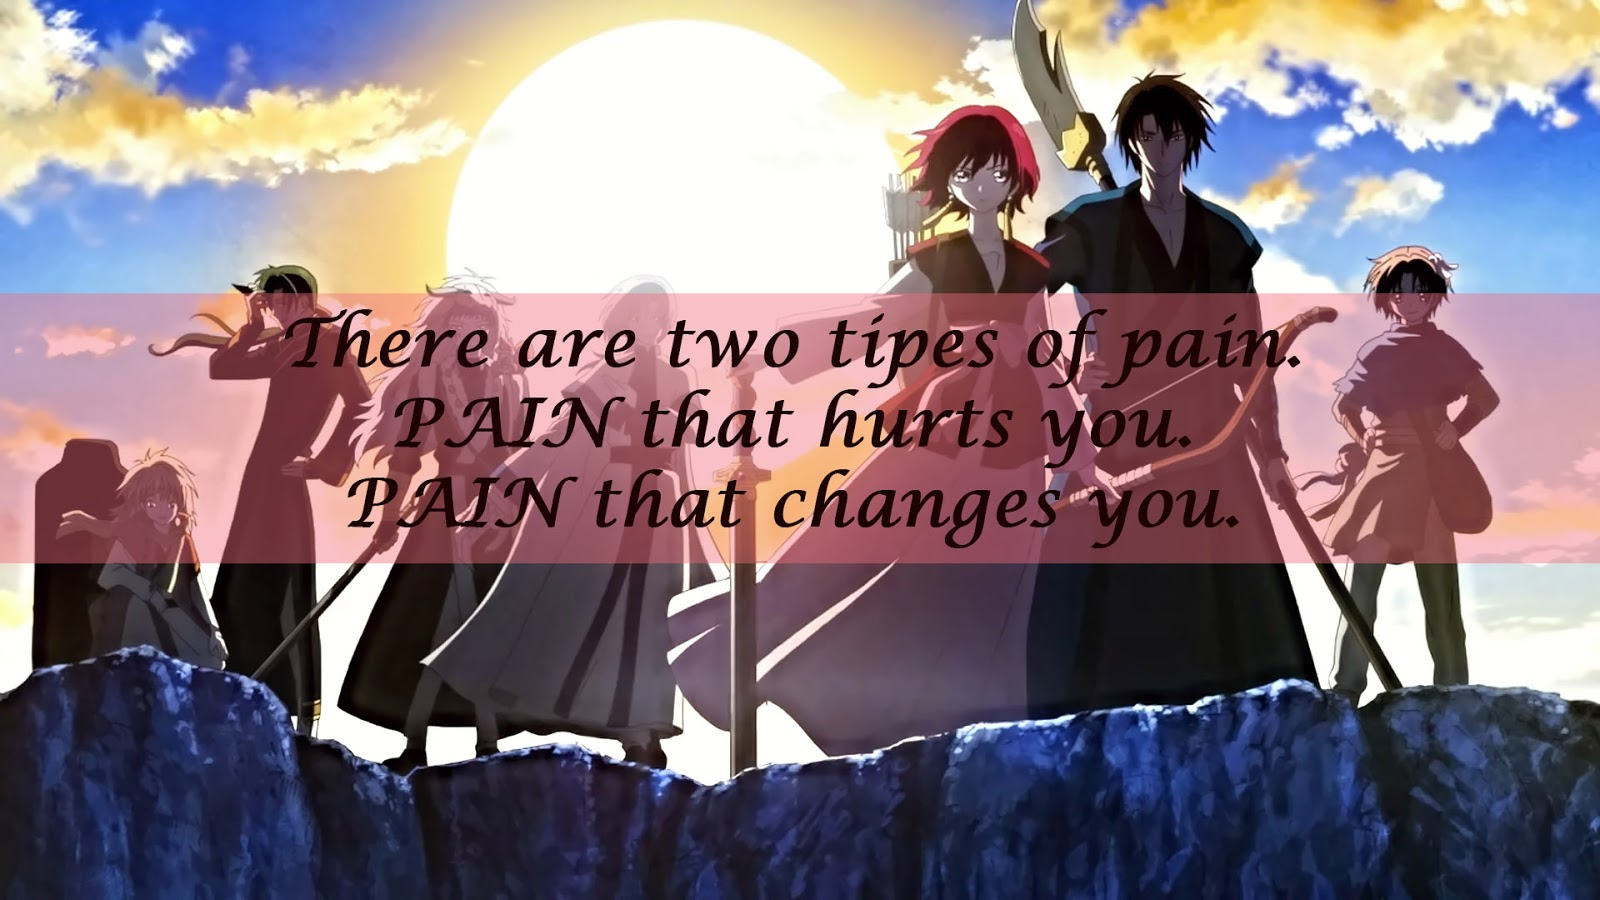 Anime Quotes About Friendship Anime Quotes